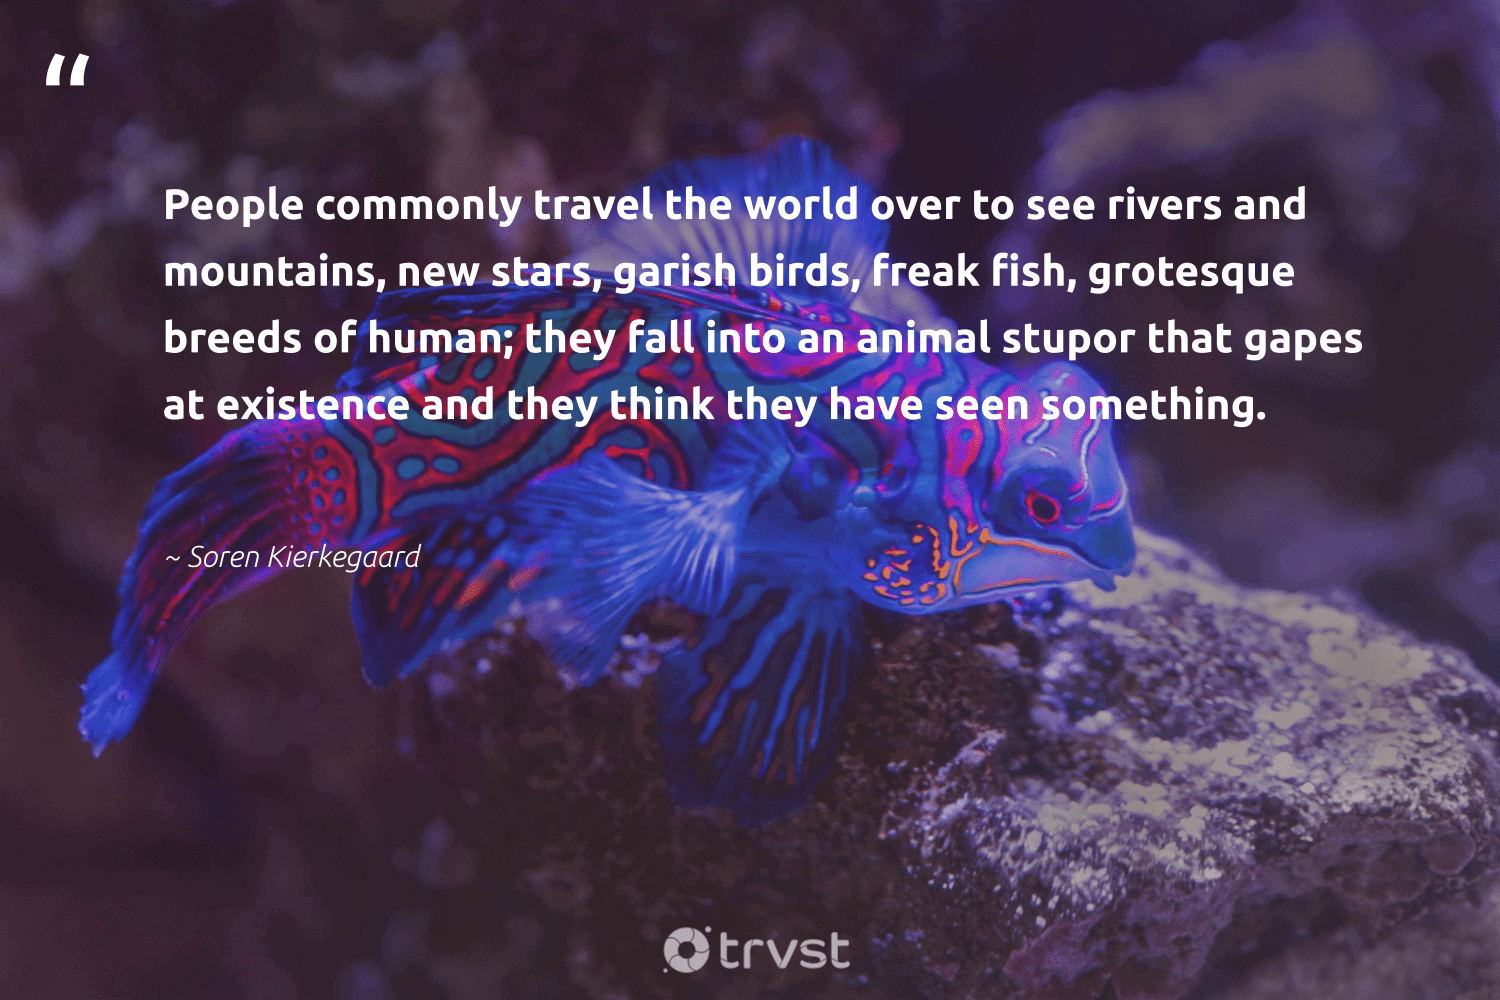 """""""People commonly travel the world over to see rivers and mountains, new stars, garish birds, freak fish, grotesque breeds of human; they fall into an animal stupor that gapes at existence and they think they have seen something.""""  - Soren Kierkegaard #trvst #quotes #rivers #mountains #fish #birds #animal #travel #wildlife #conservation #biology #impact"""